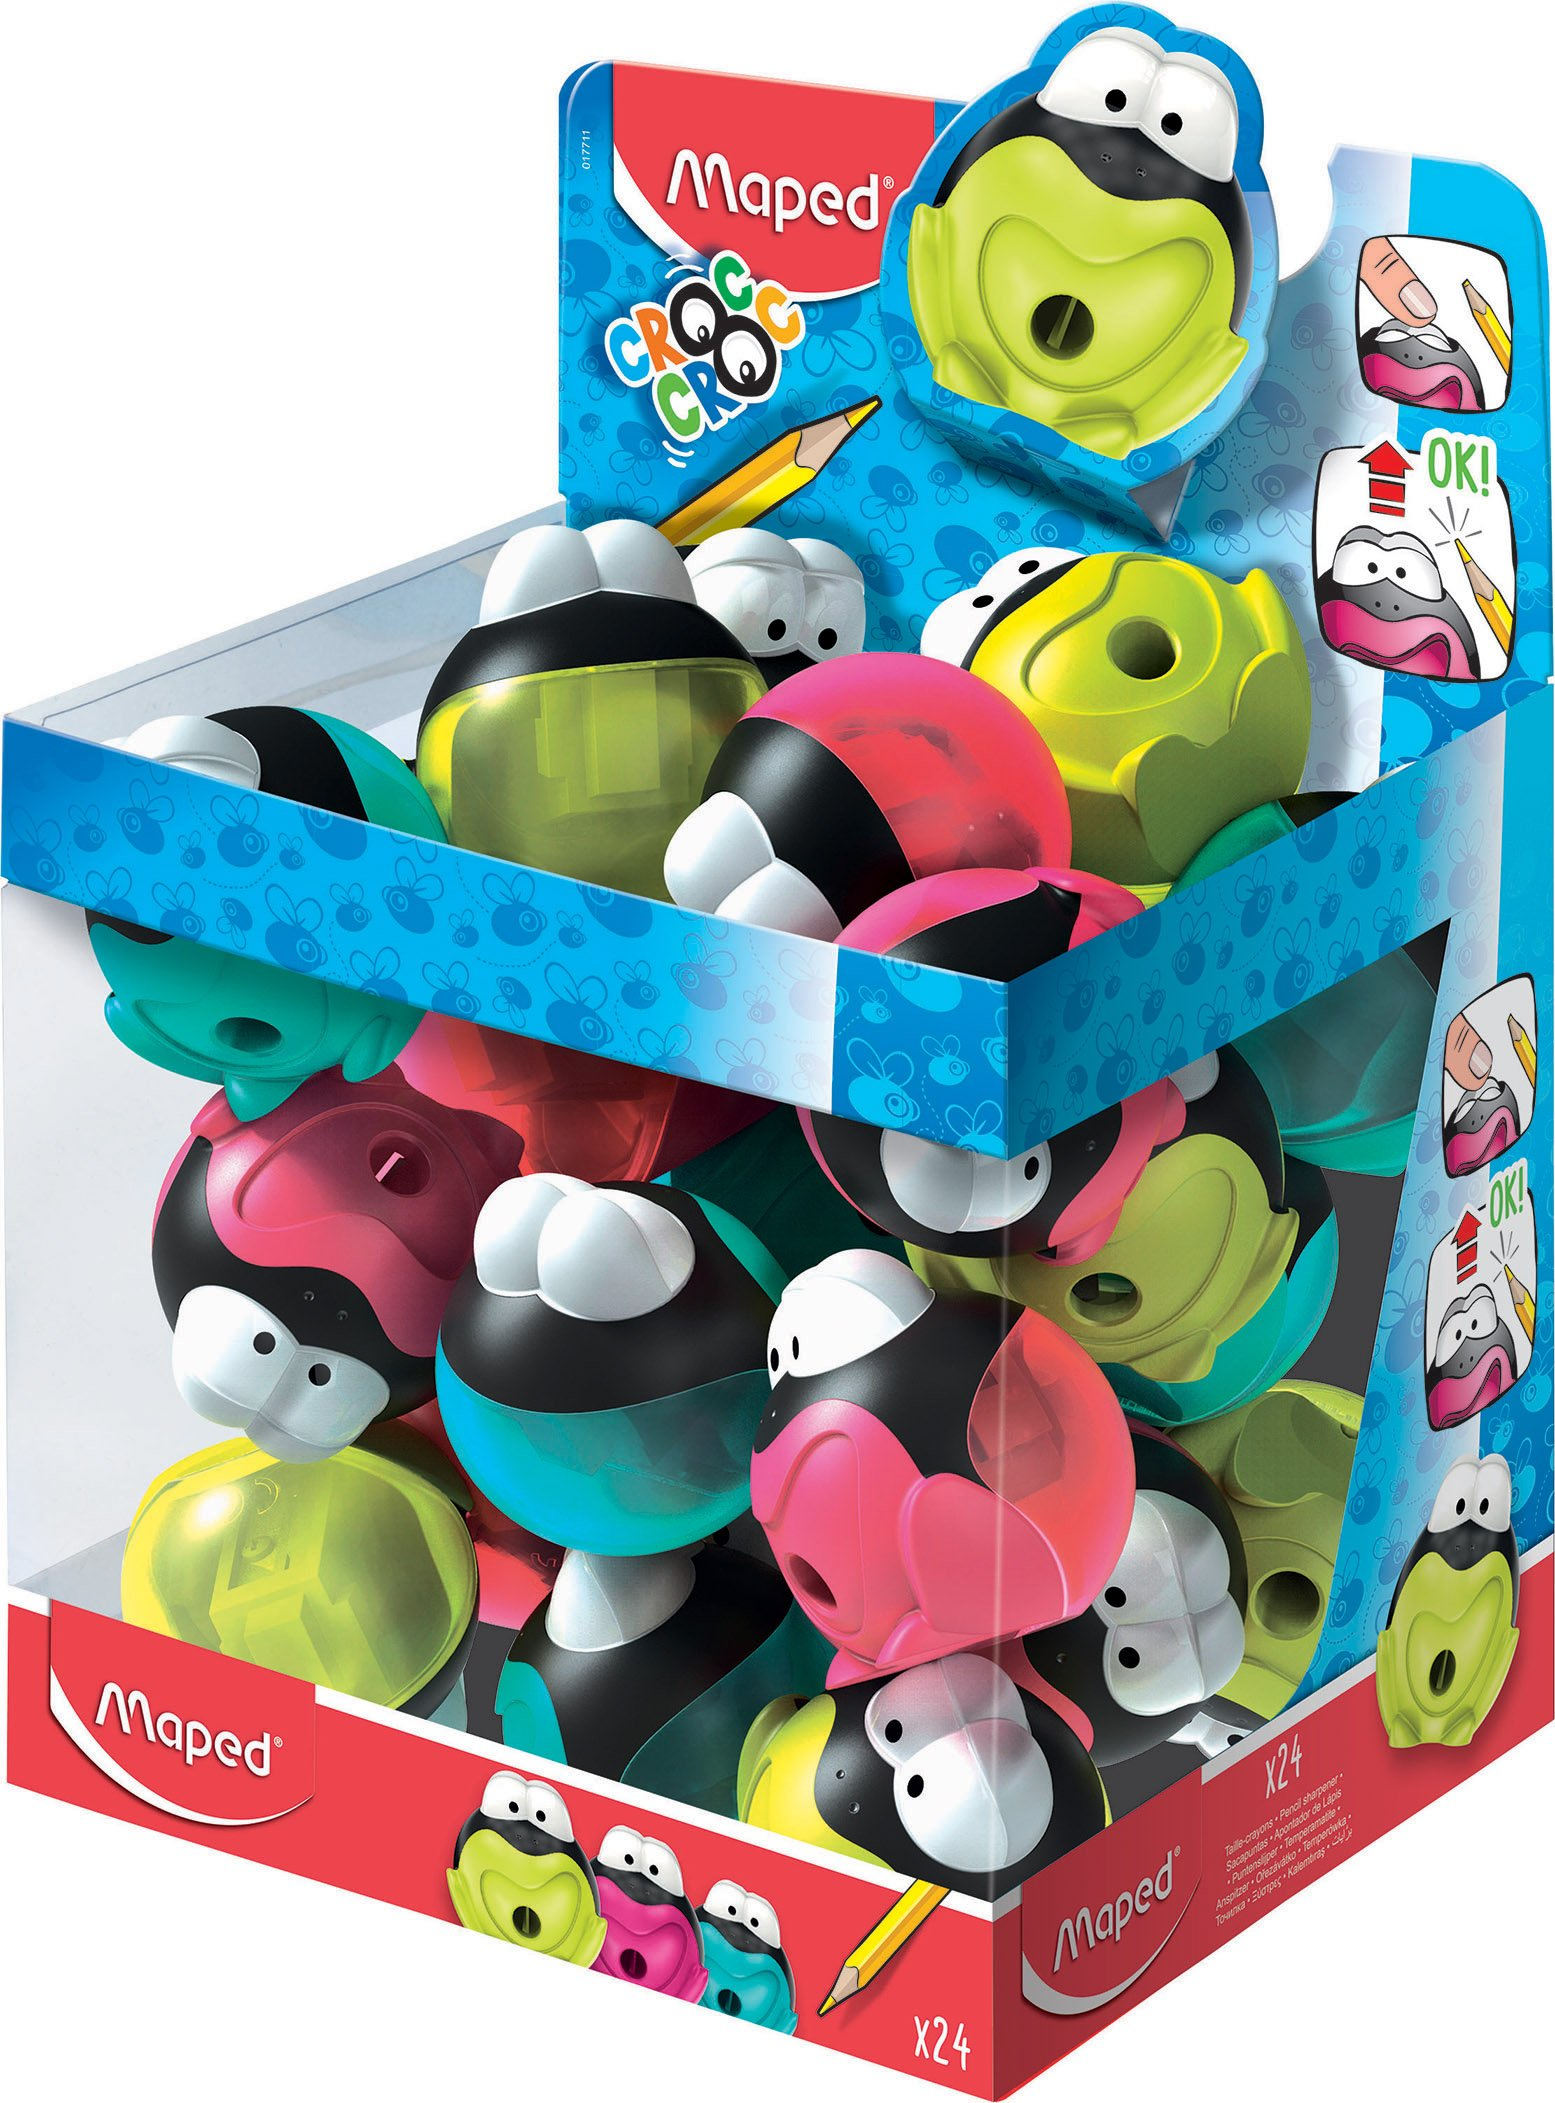 Maped Croc Croc Frog One Hole Canister Pencil Sharpener (Box of 24 in Assorted Colours) by Maped